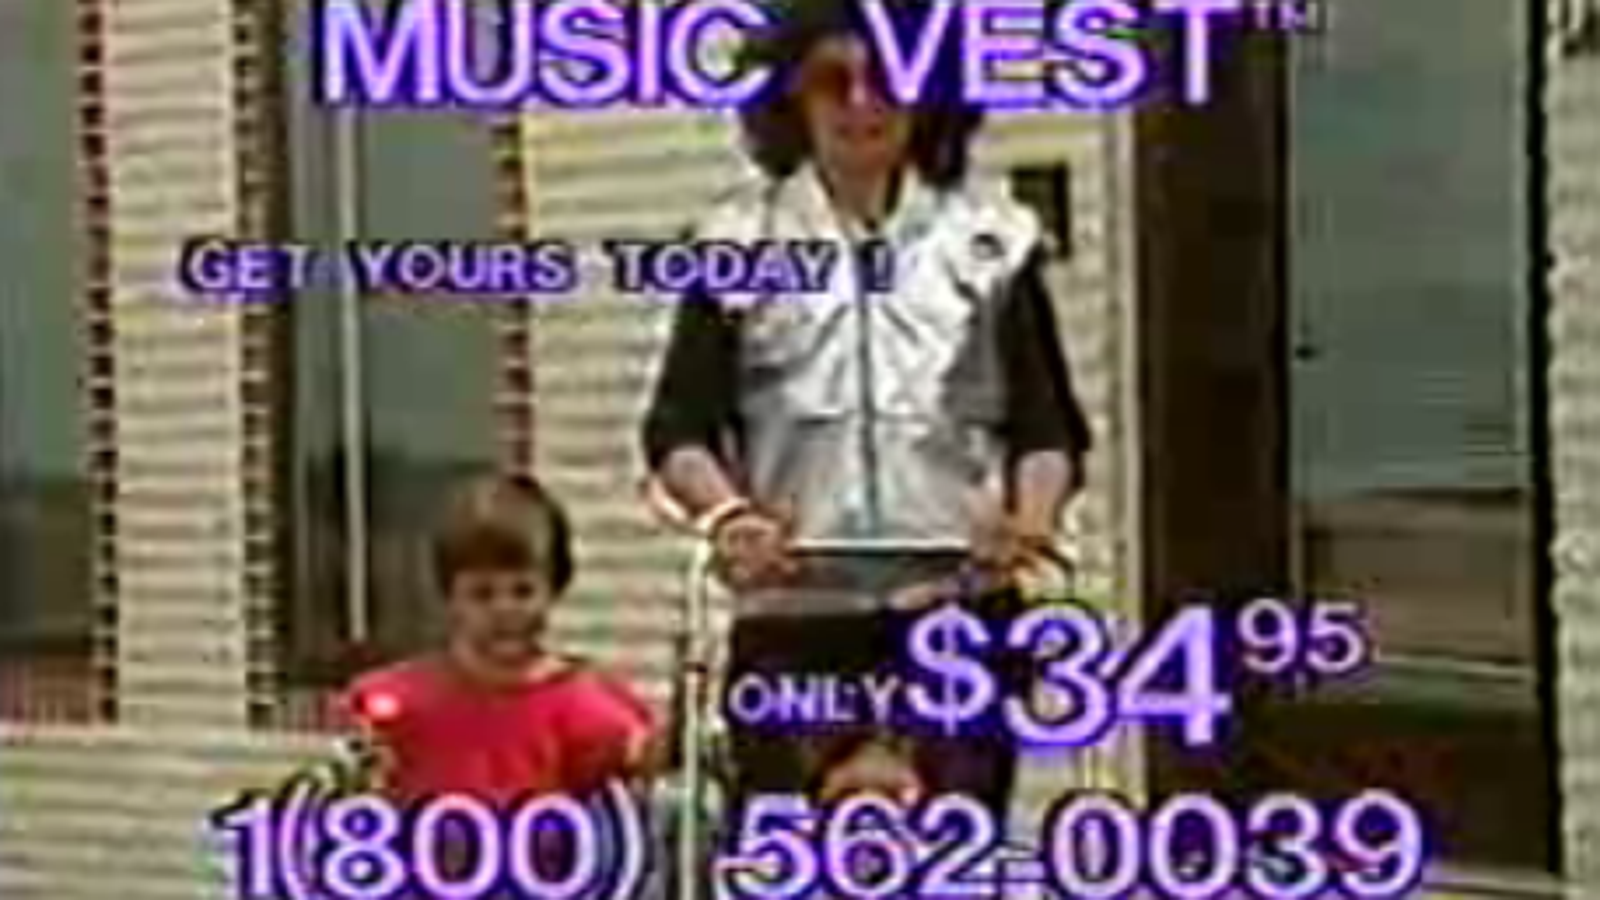 Music Vest Ad from the '80s is Probably the Pinnacle of